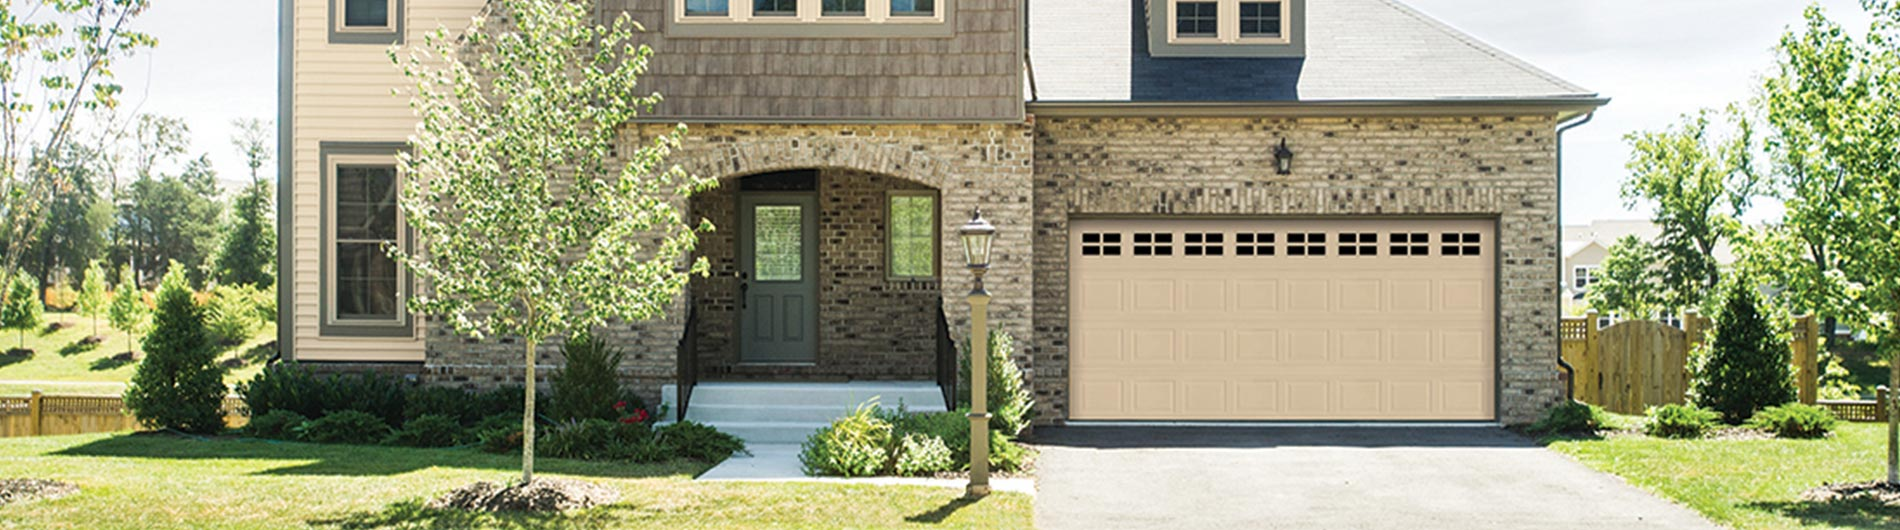 Classic Steel Garage Doors 8024-8124